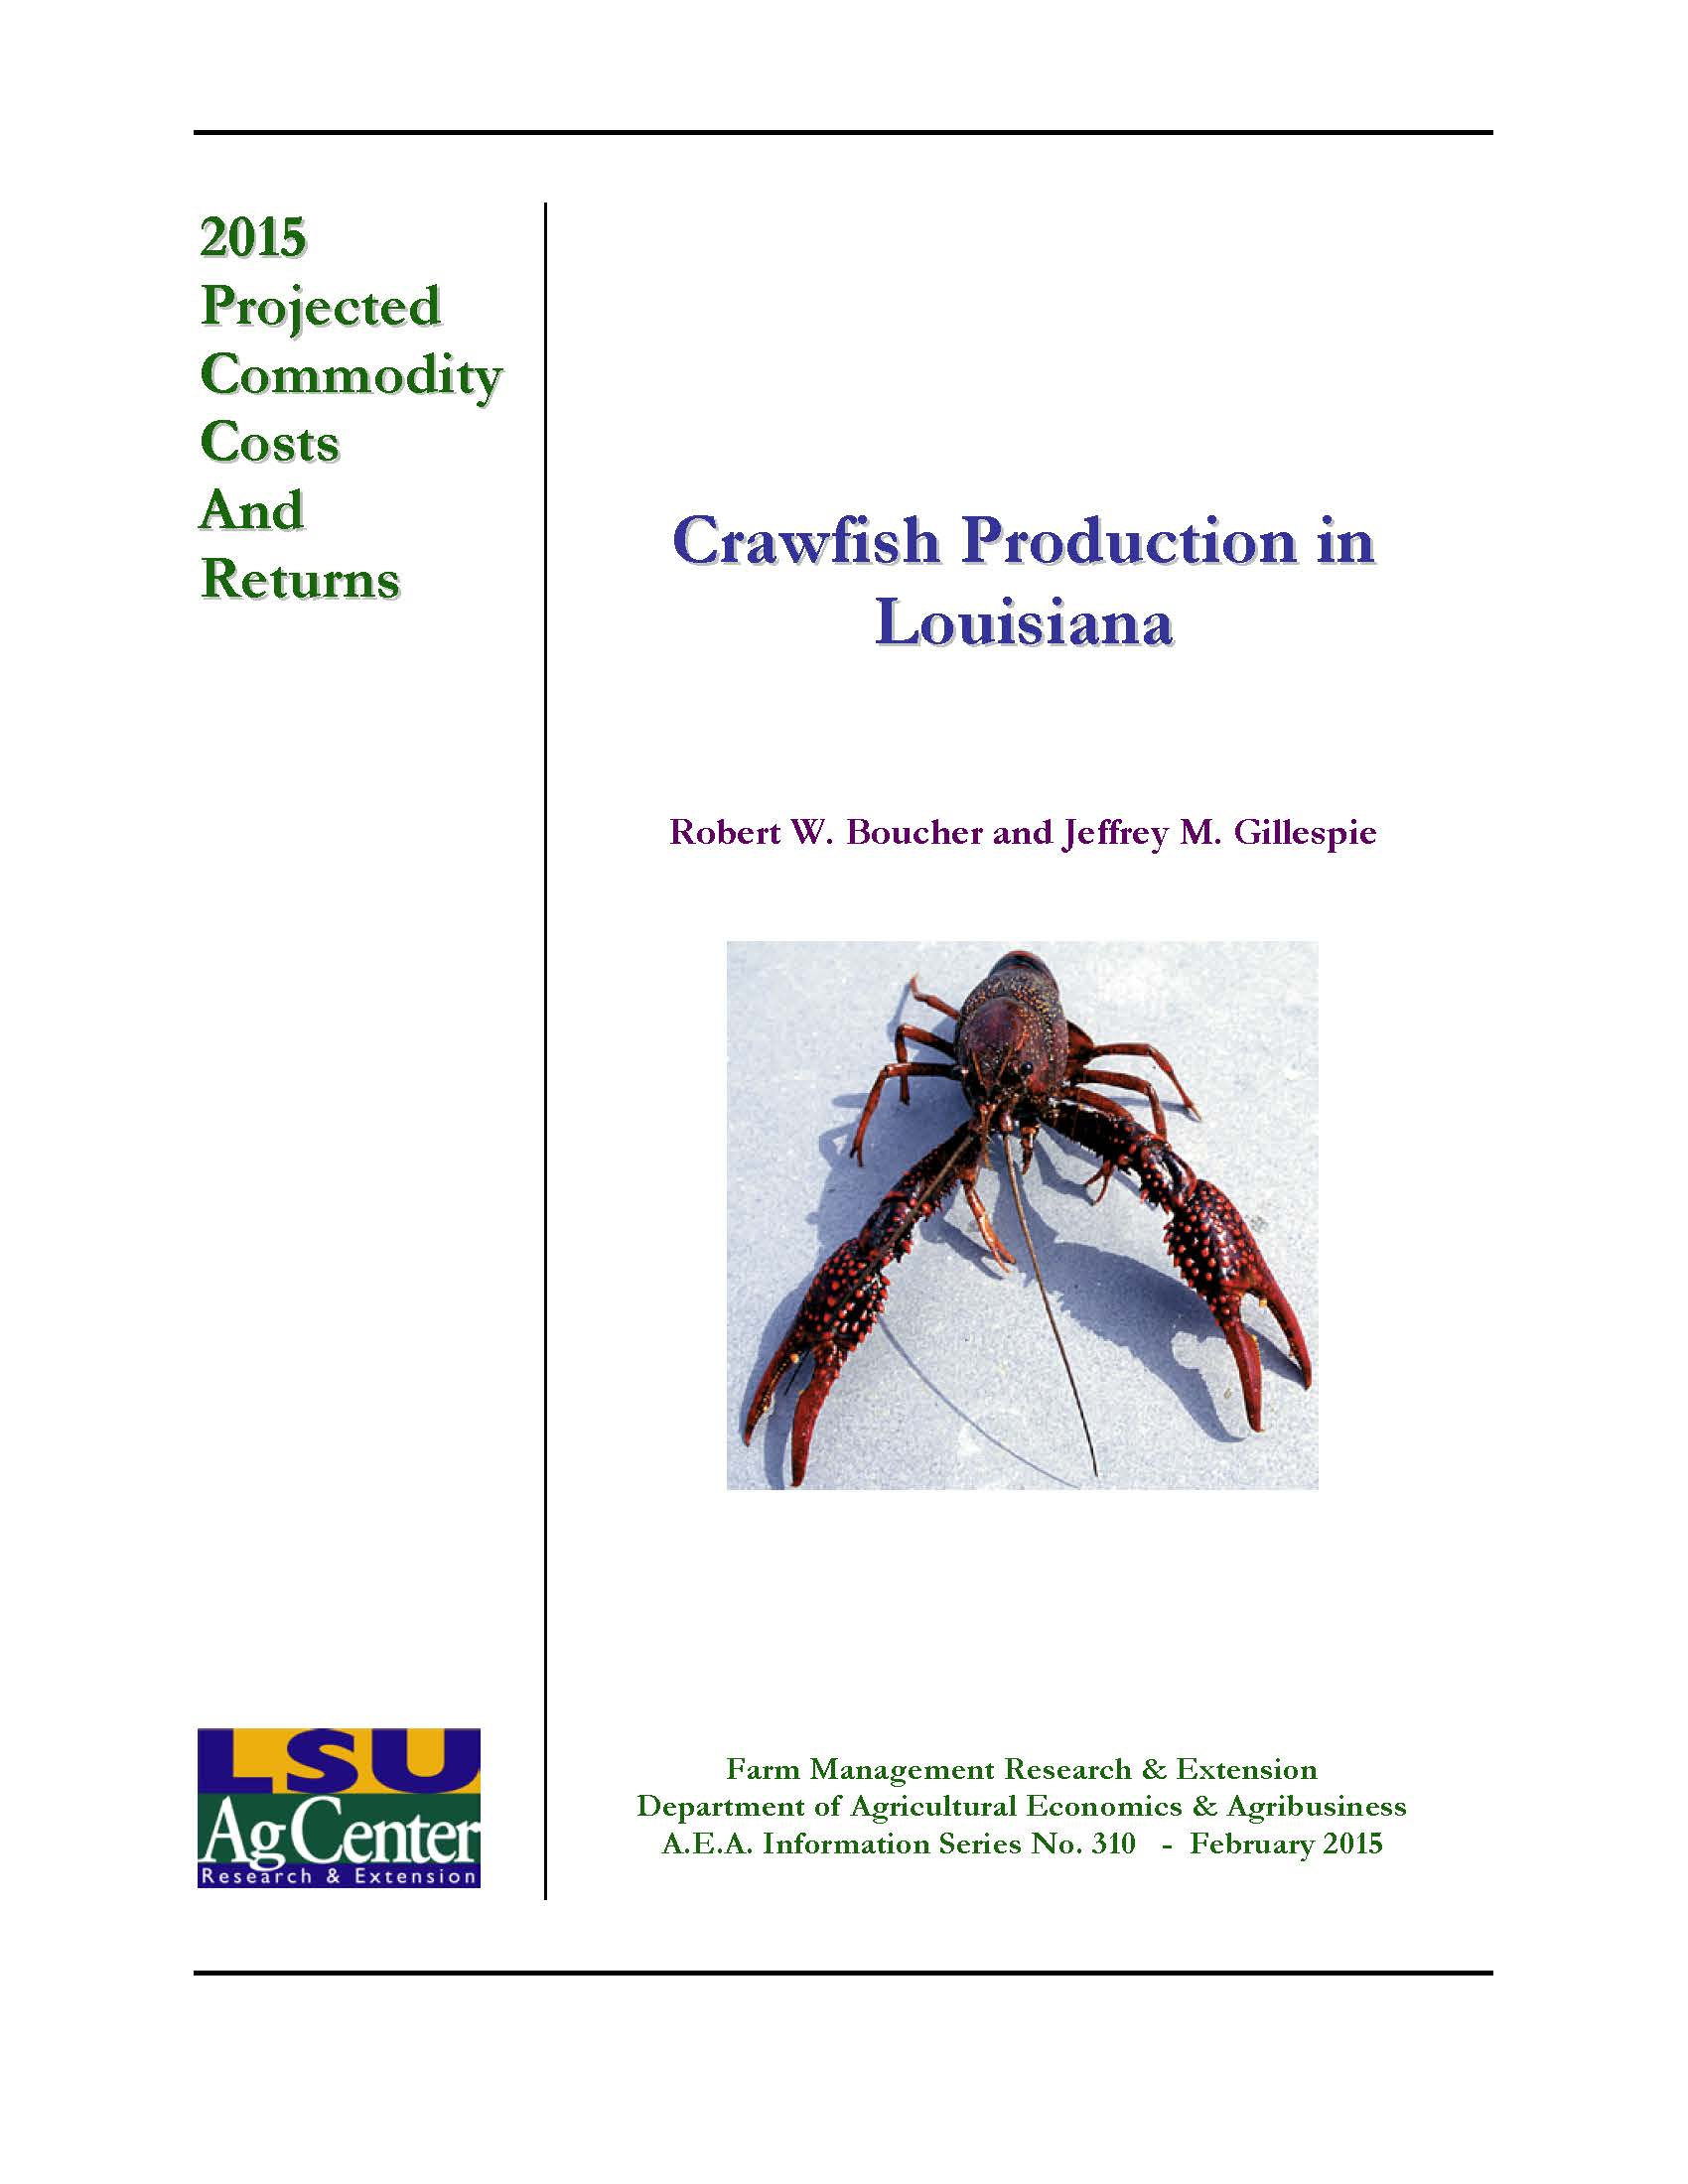 Projected Costs for Crawfish Production in Louisiana 2015.